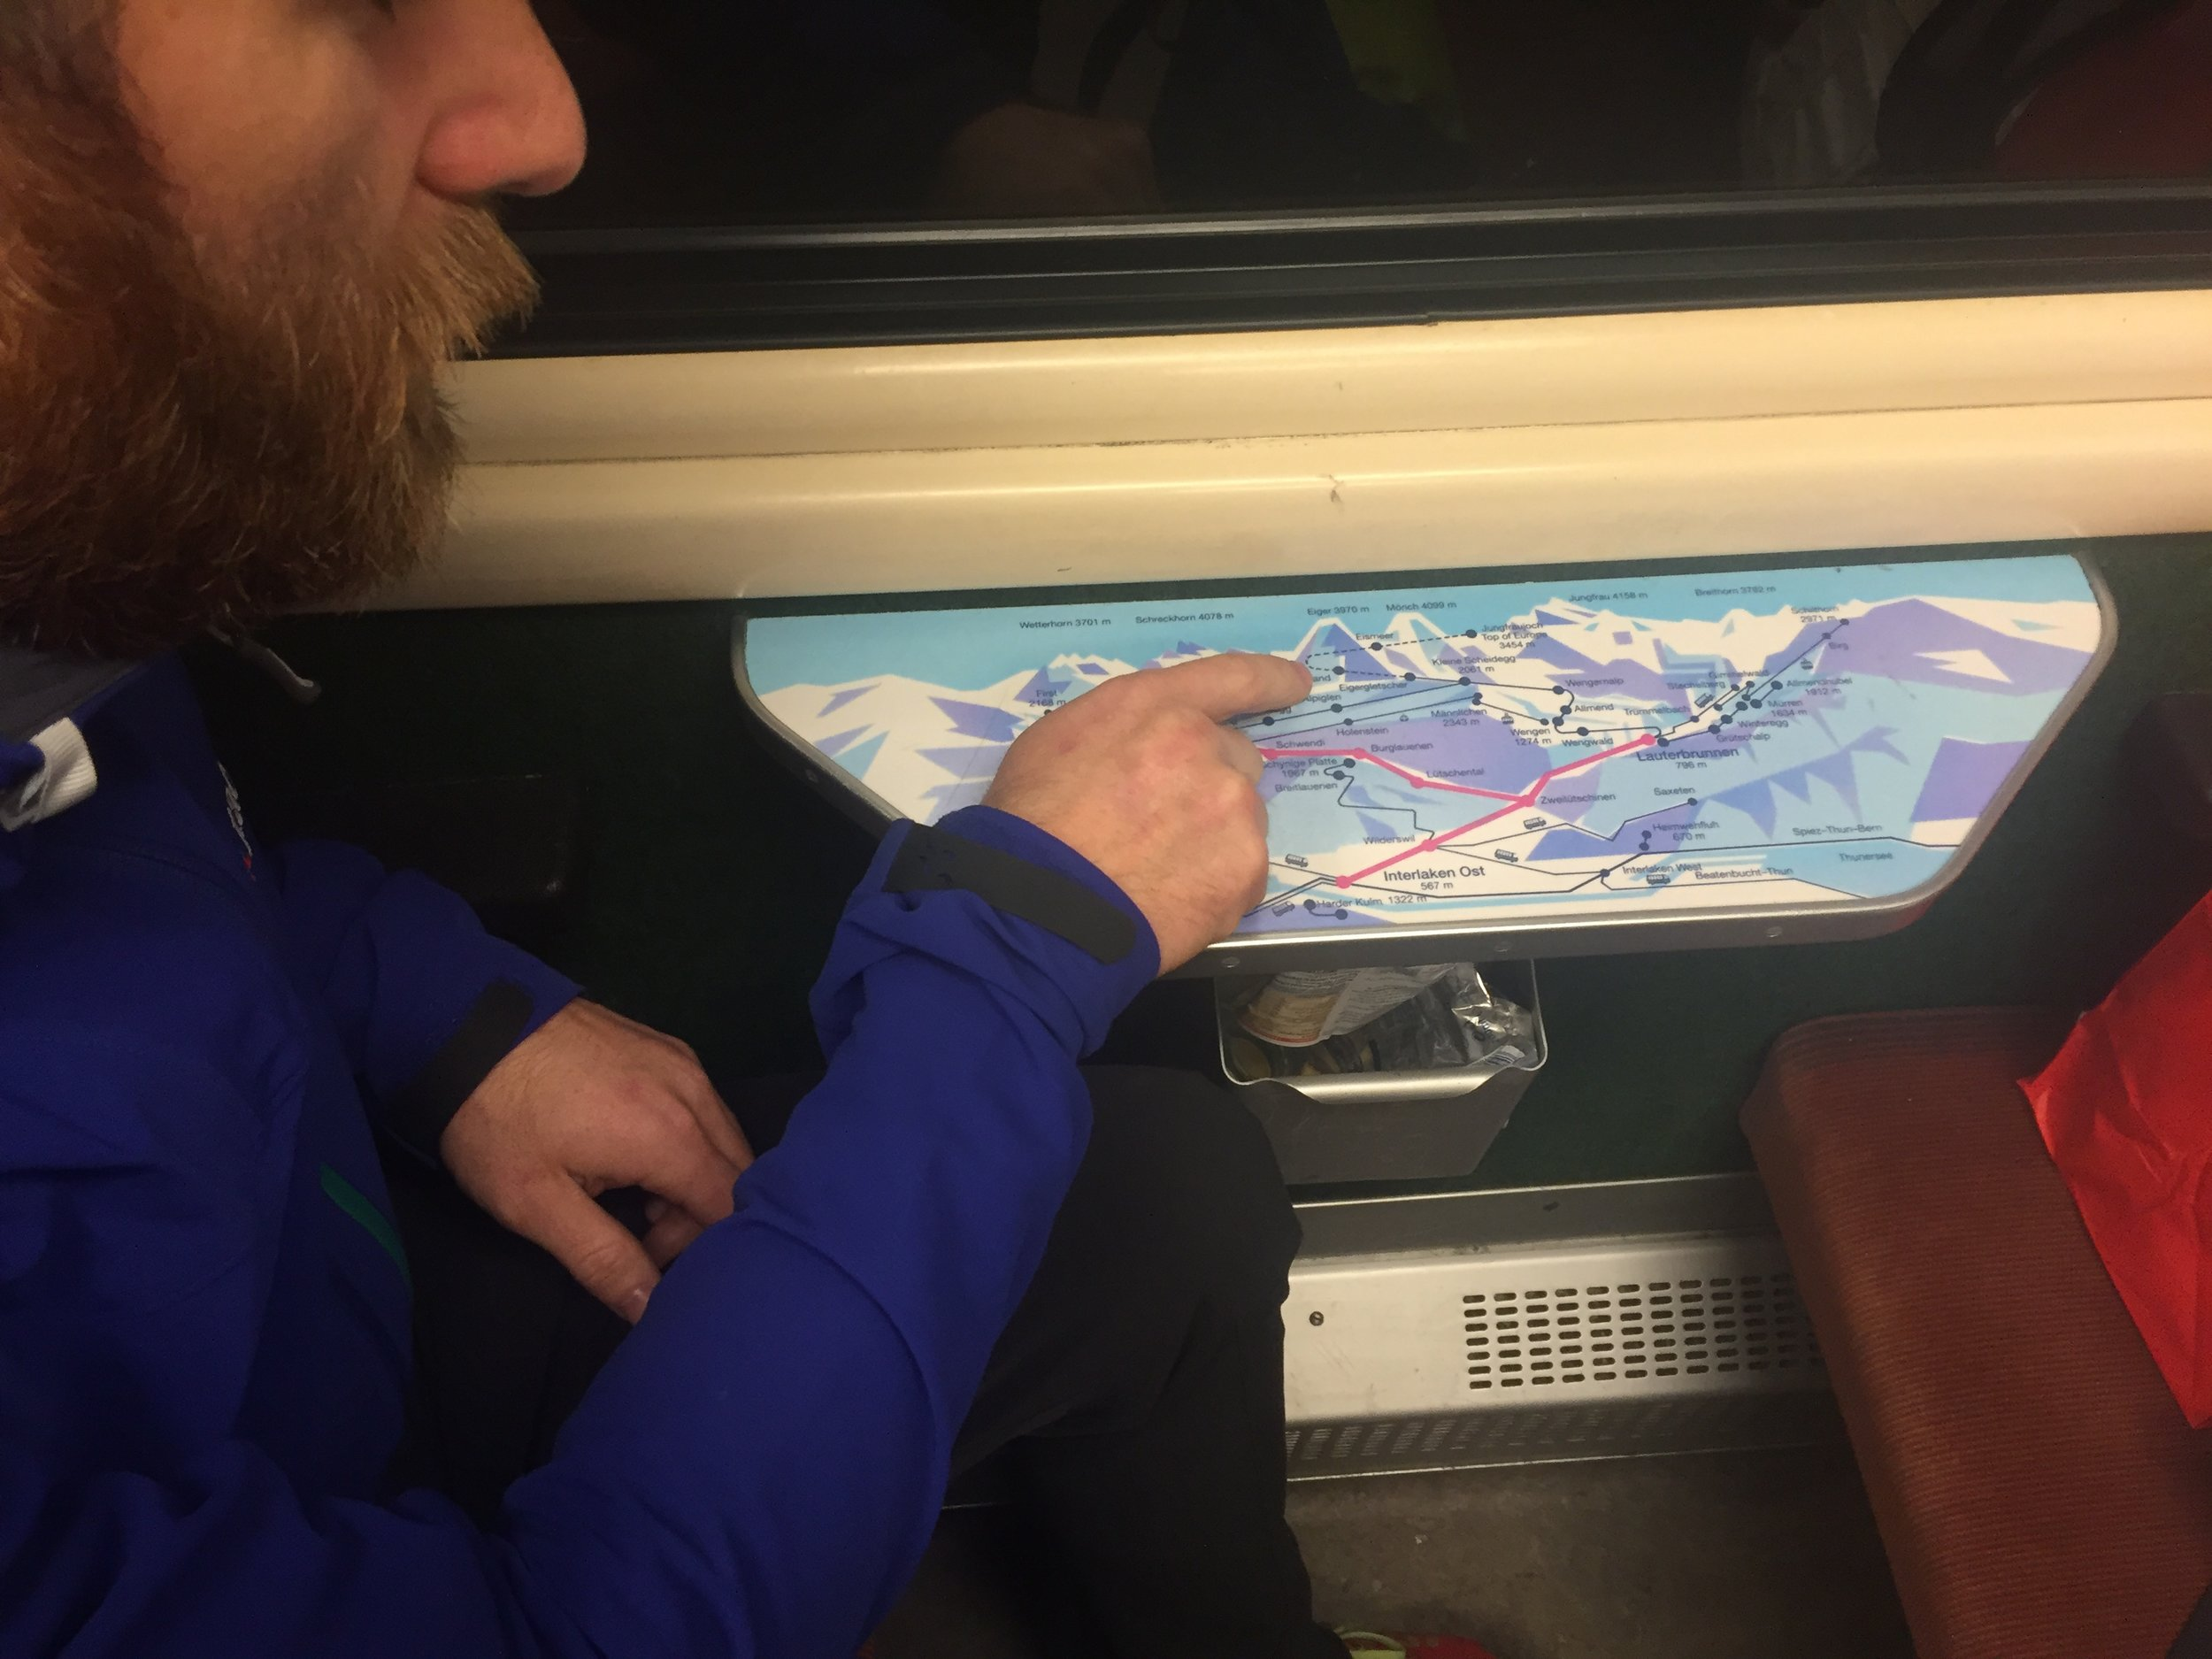 Jed pointing out our route, on the handy cartoon map table on the train to Kleine Scheidegg.